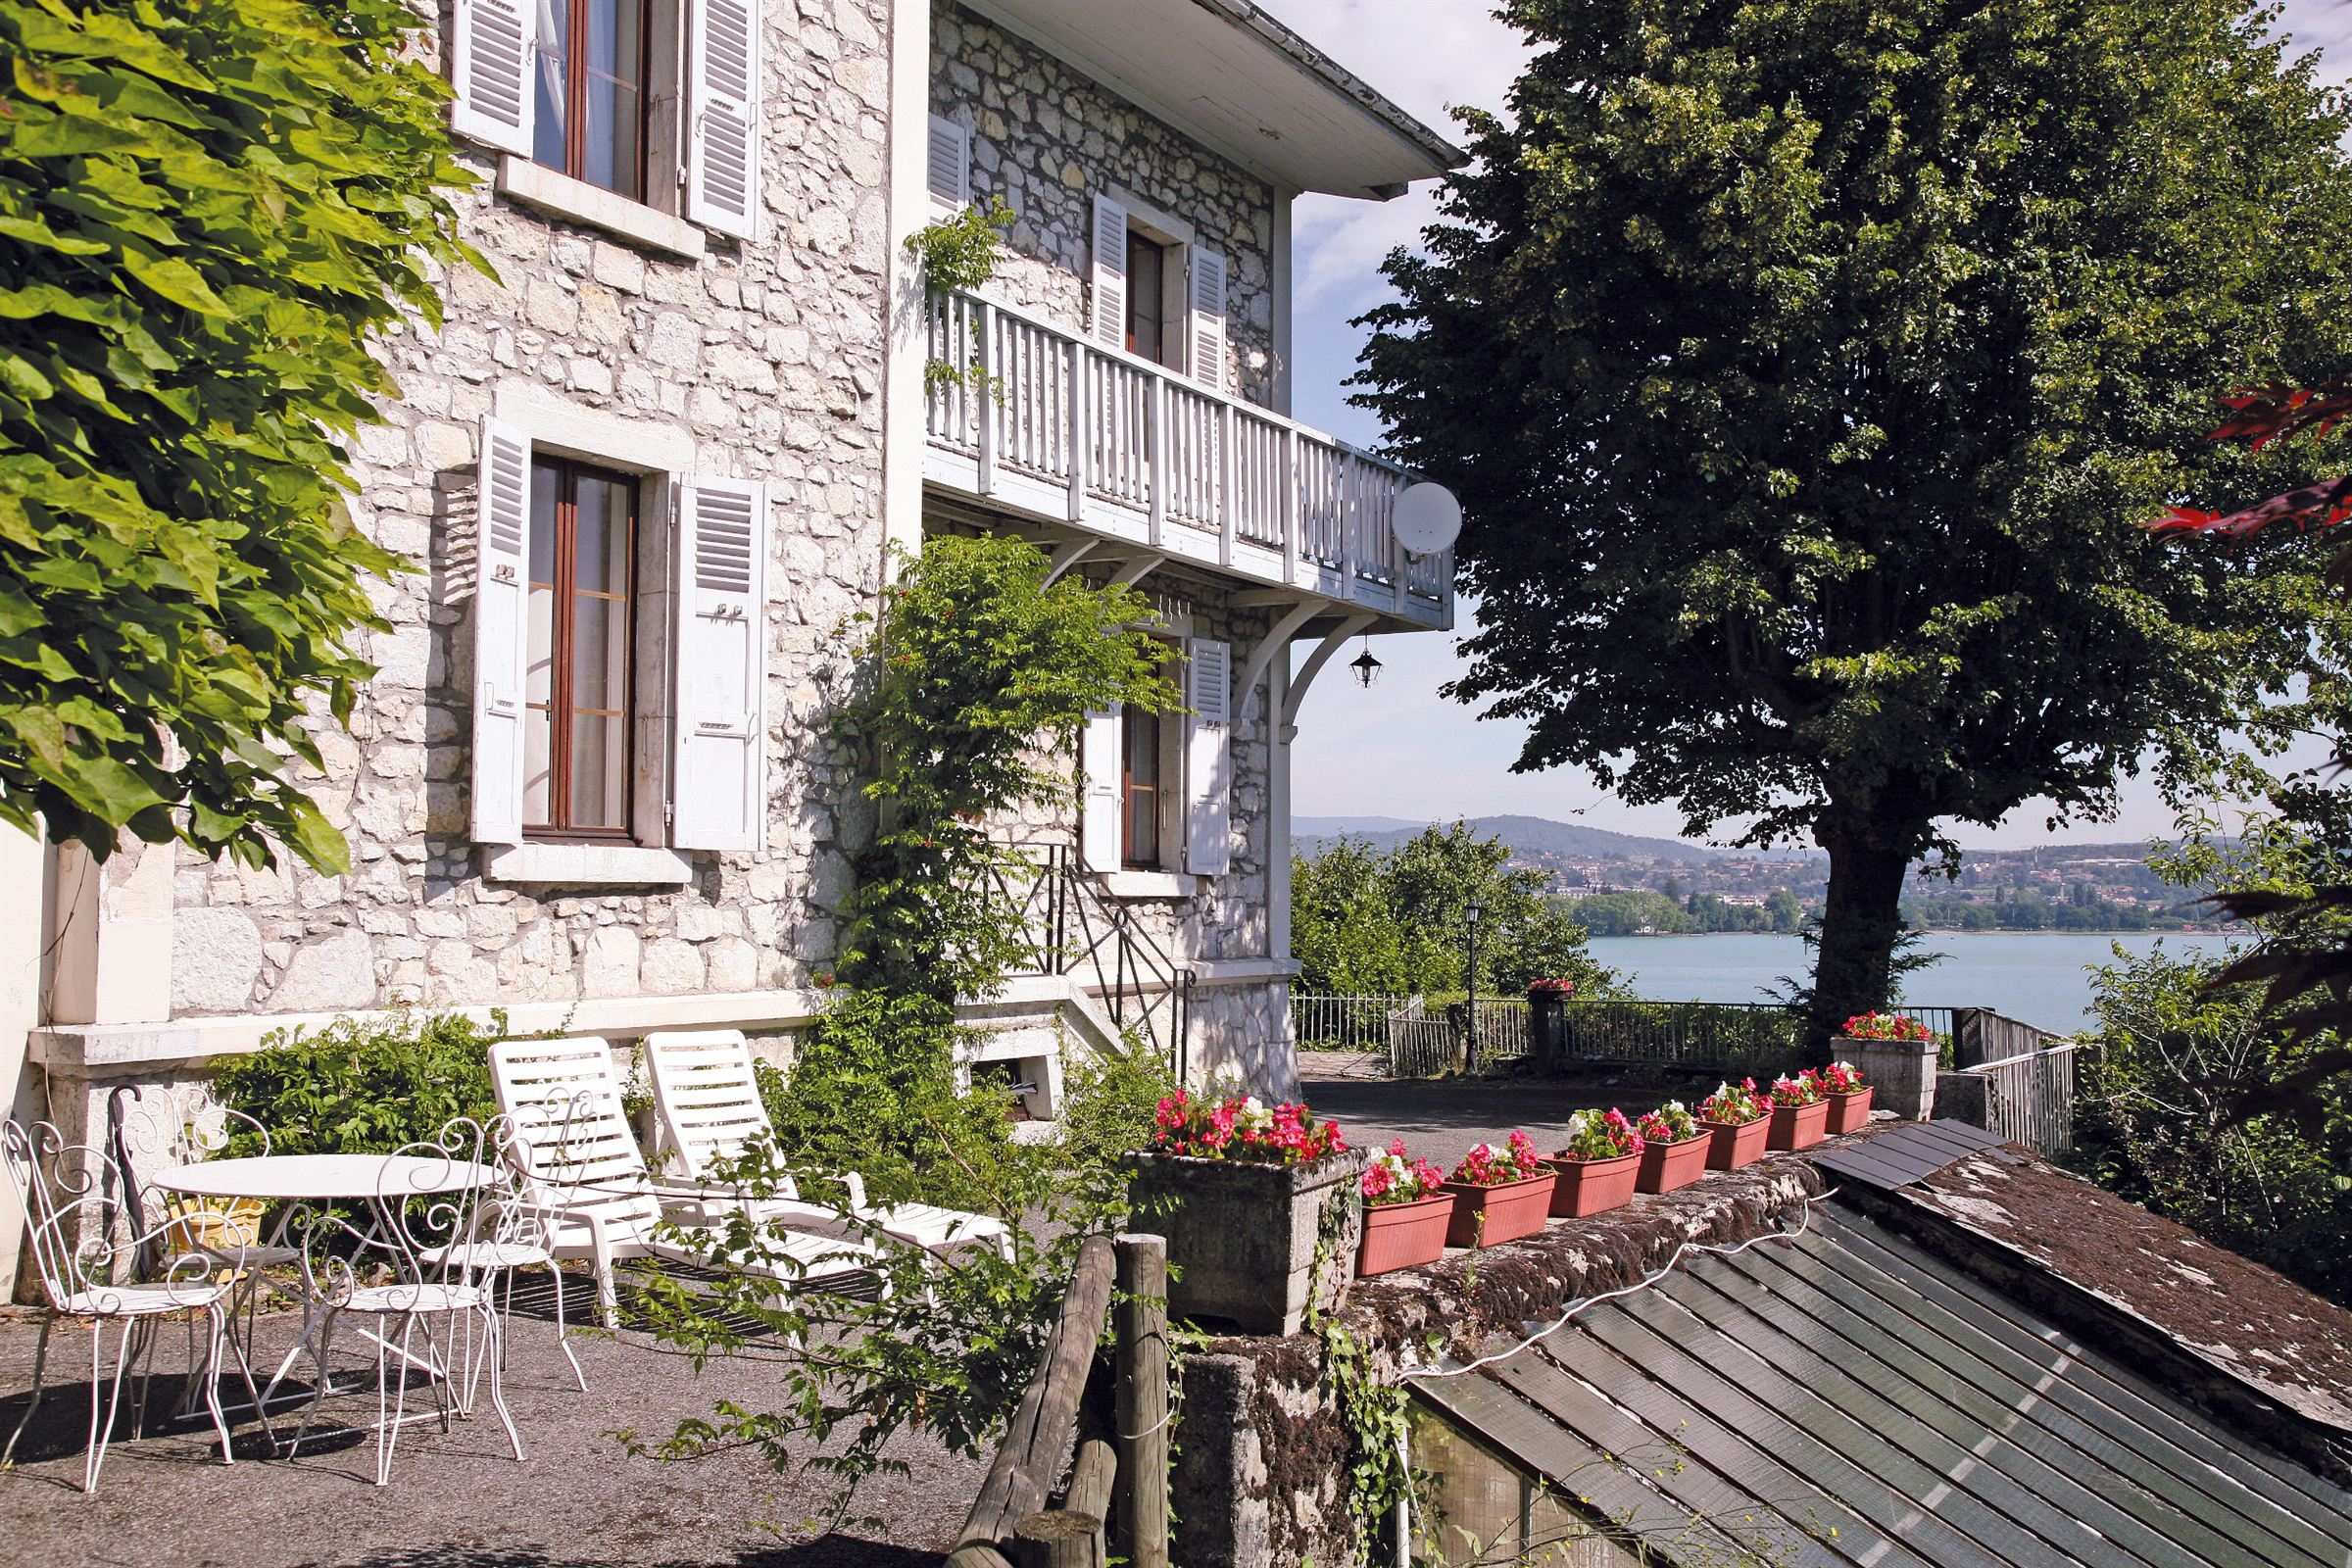 Moradia para Venda às Unique character property with splendid lake view, close to Annecy centre Annecy, Rhone-Alpes, 74000 França